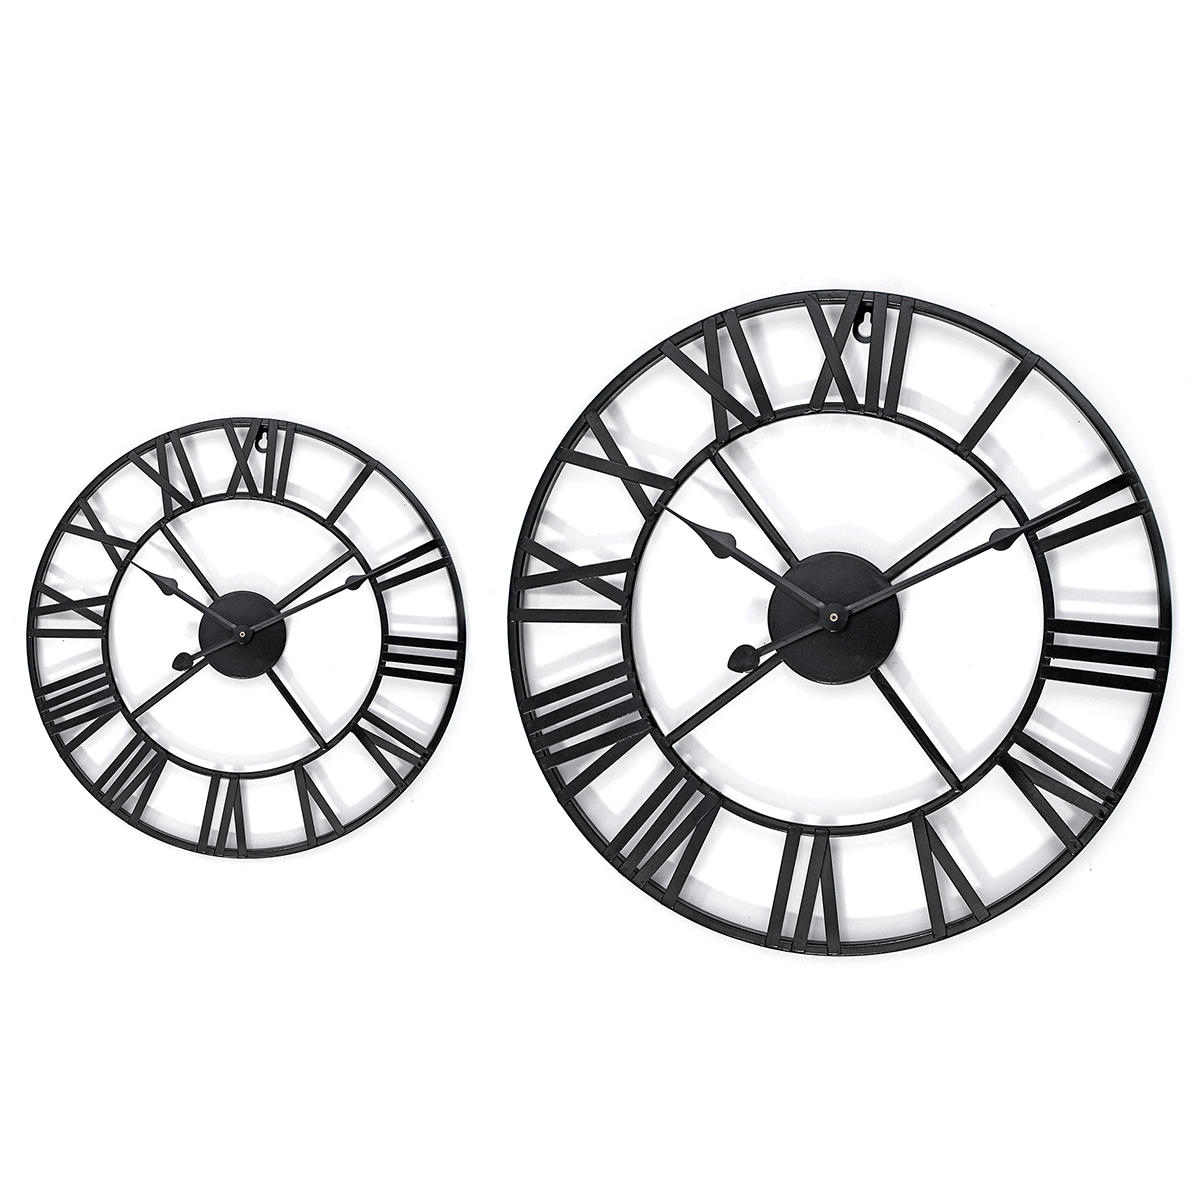 40 60cm Large Metal Skeleton Roman Numeral Wall Clock Black Round Shape